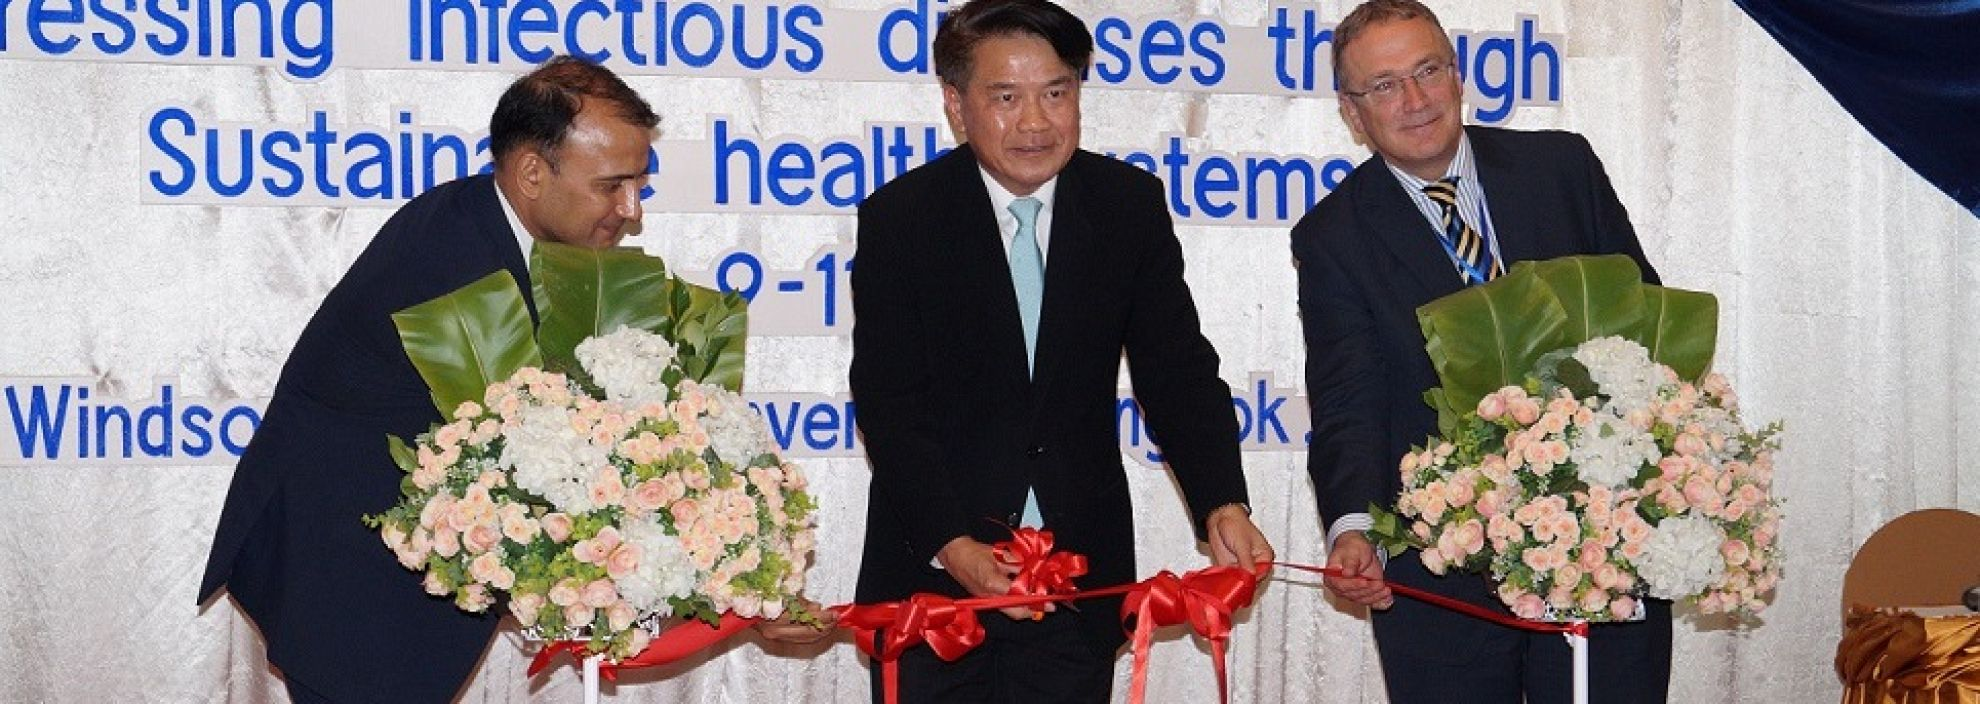 Latest News Strong regional health systems are the answer to infectious disease control